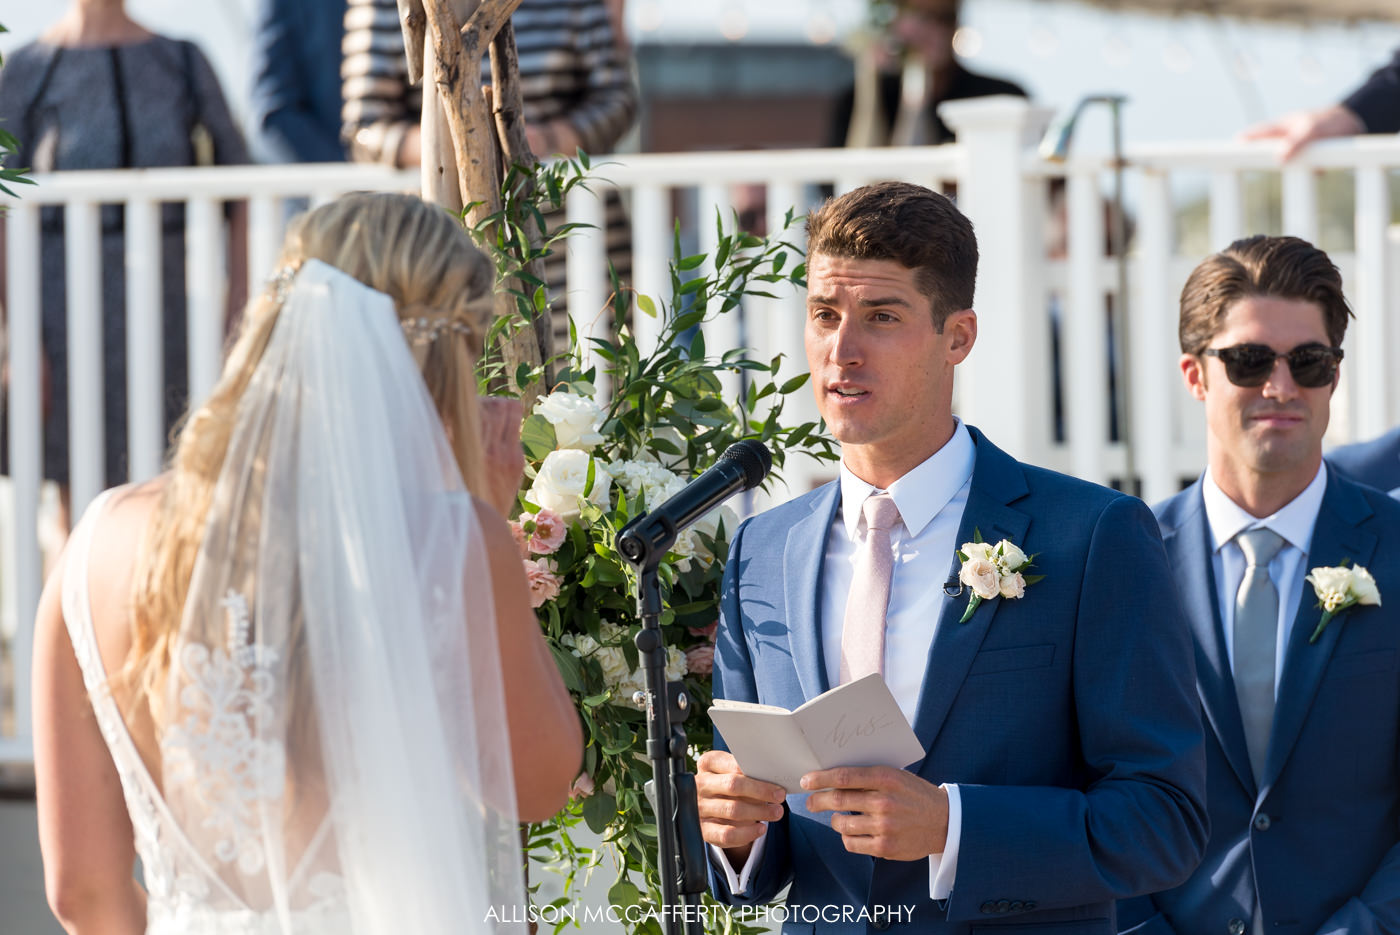 Groom reading his vows during an outdoor ceremony